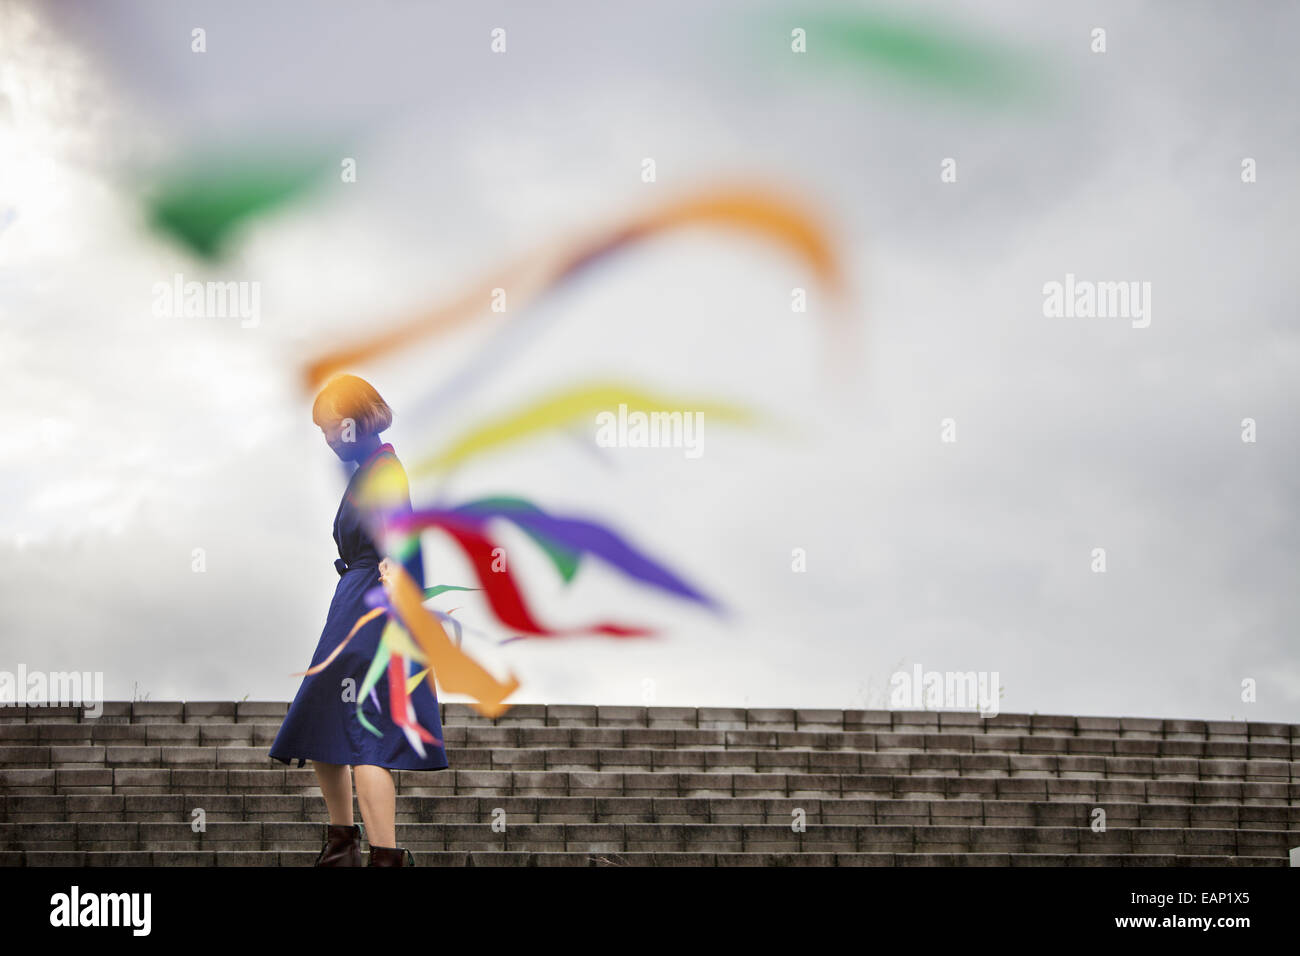 An artist during a performance moving a line of flags or streamers. - Stock Image